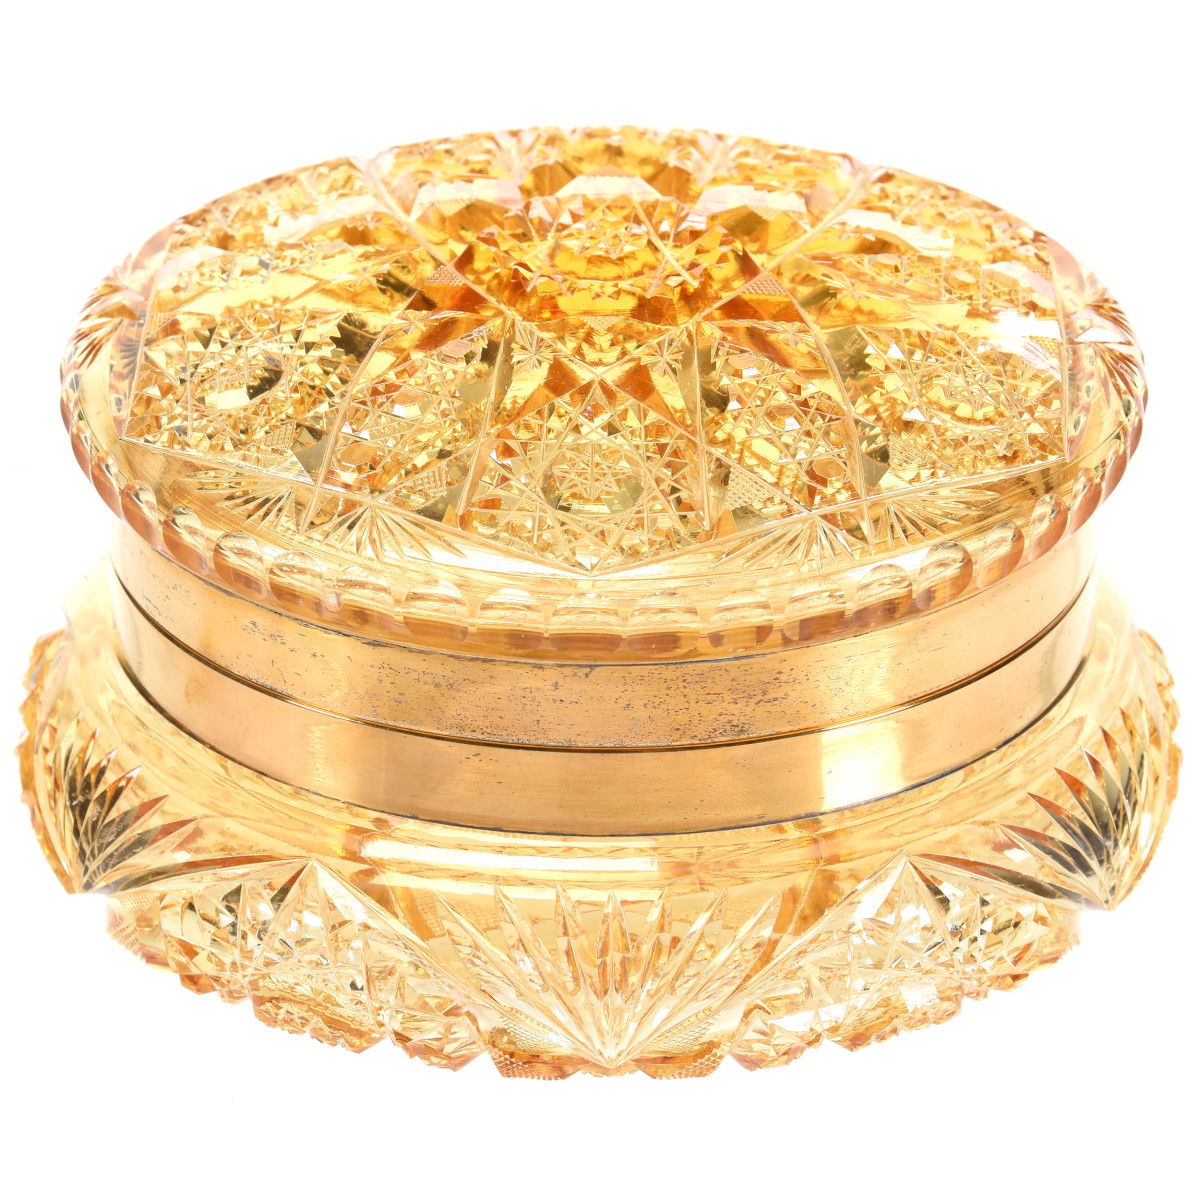 "One of the expected star lots is this ABCG round dresser box in a solid gold color with gilt metal fittings, attributed to Union Cut Glass and purchased from the Julian De Cordova Museum in Lincoln, Mass, 3 -1/2"" x 6-1/4""."